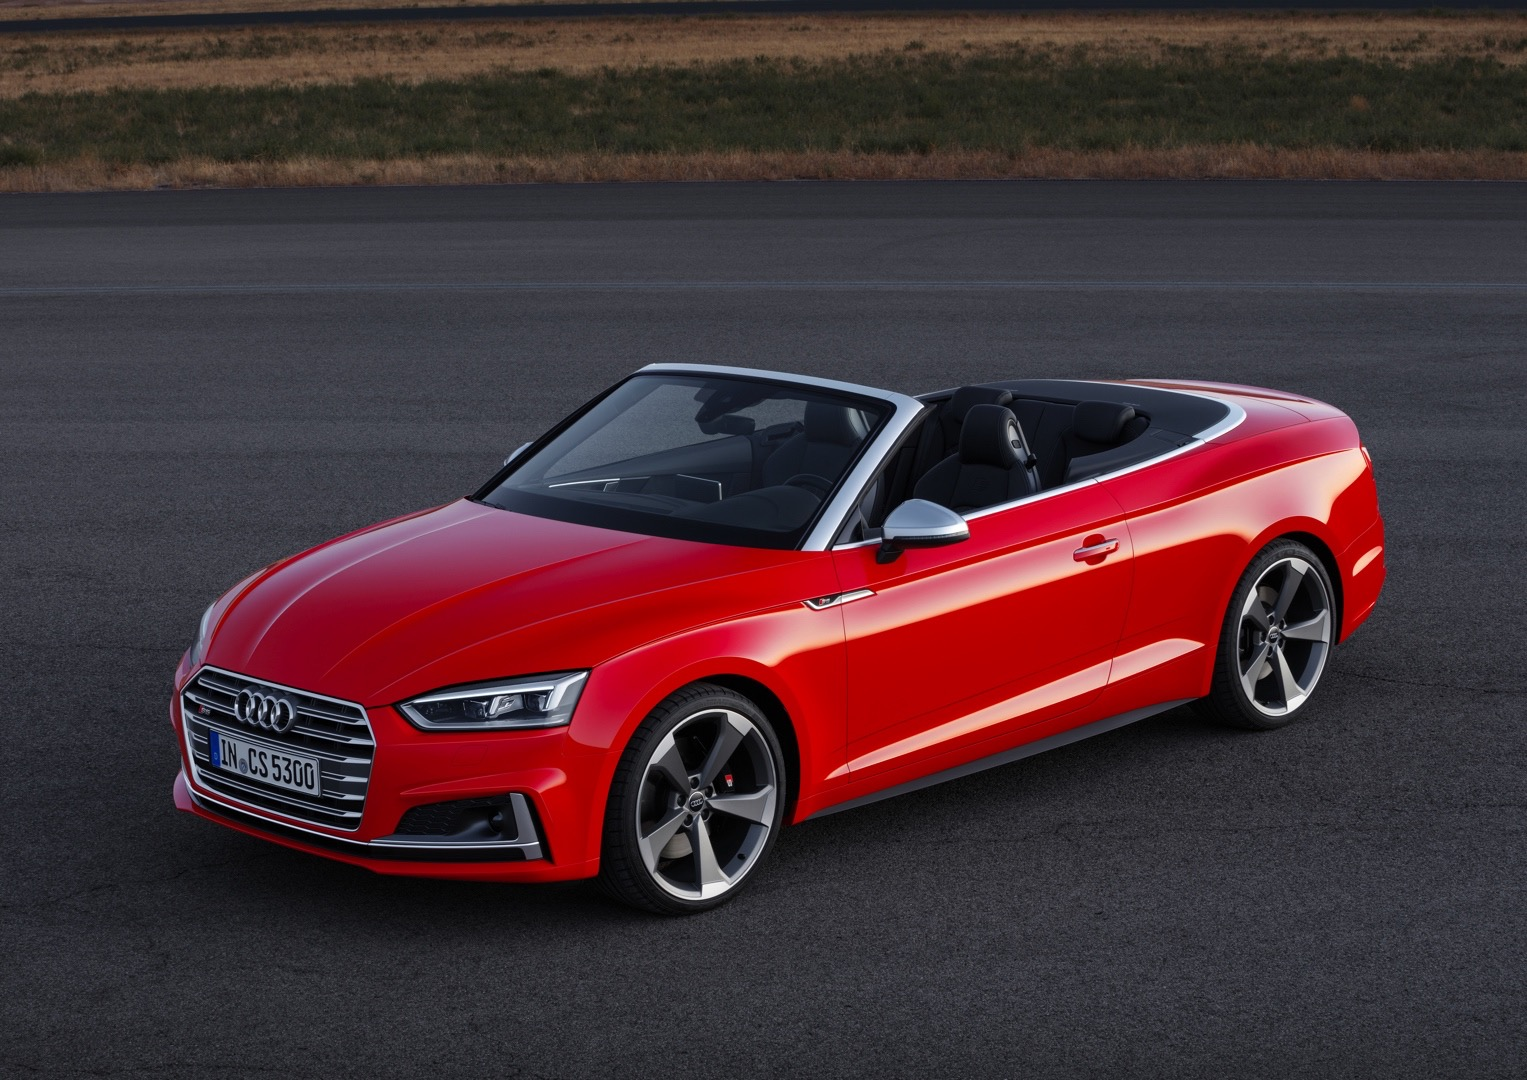 2017 audi a5 cabriolet and 2017 audi s5 cabriolet presented ahead of la debut autoevolution. Black Bedroom Furniture Sets. Home Design Ideas